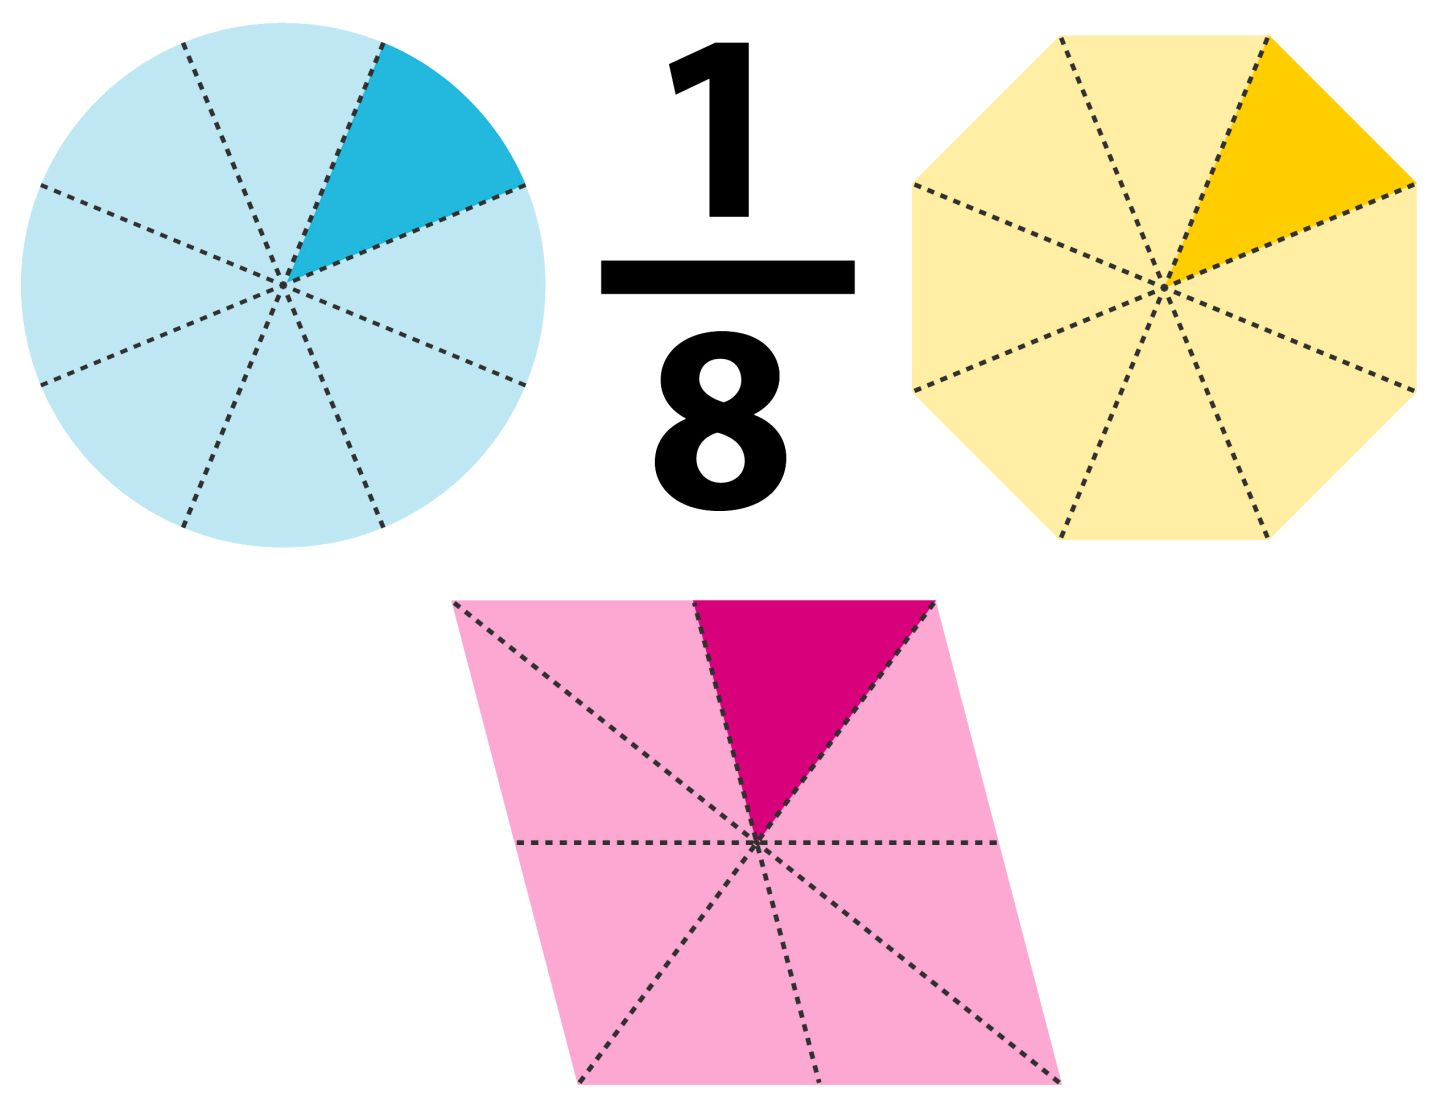 how to find out which fraction is smalelr